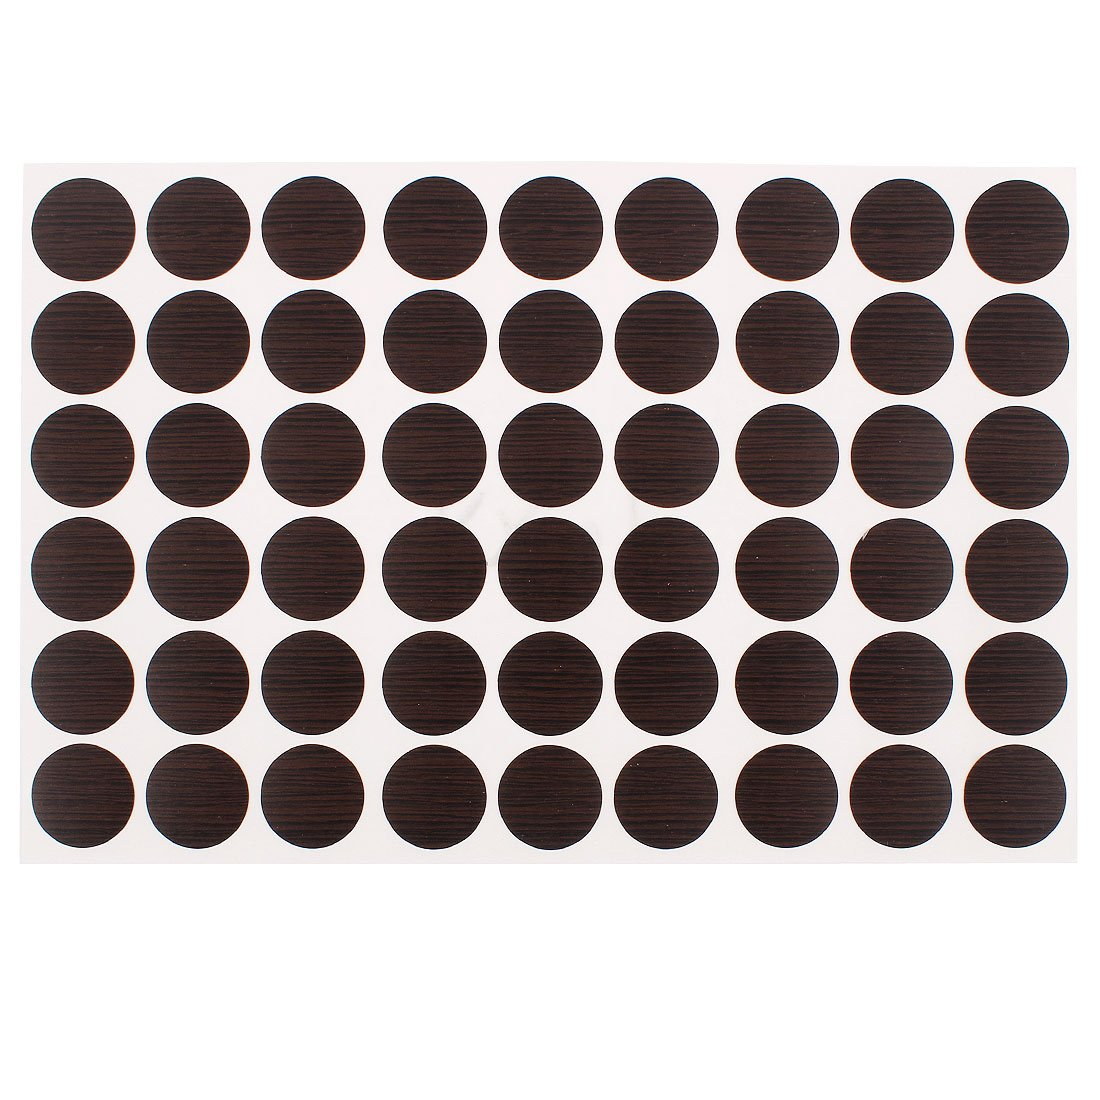 Home Office Self-Adhesive Screw Covers Caps Stickers 21mm Dia 54 in 1 uxcell a15112300ux1188